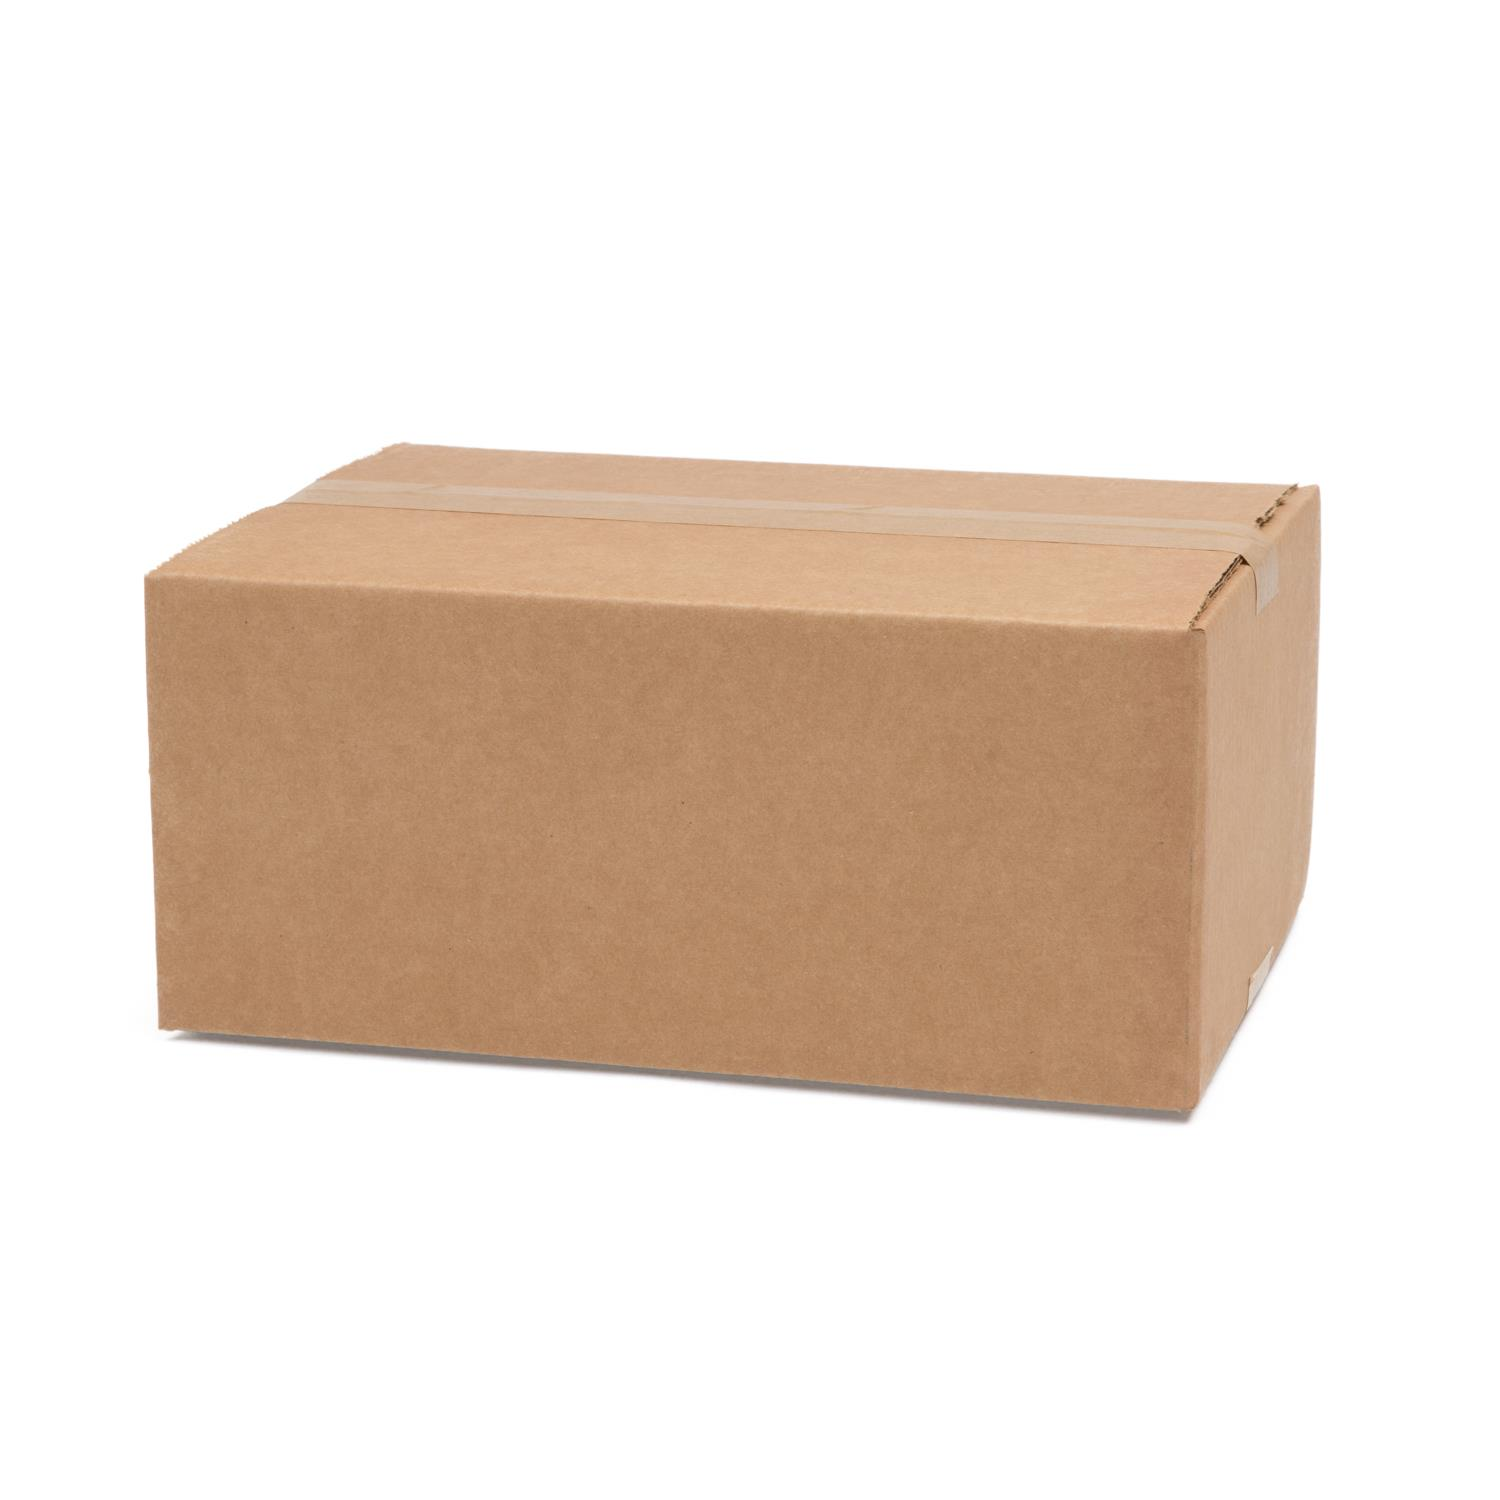 63650b14330 Shipping Boxes   Supplies Shipping Boxes